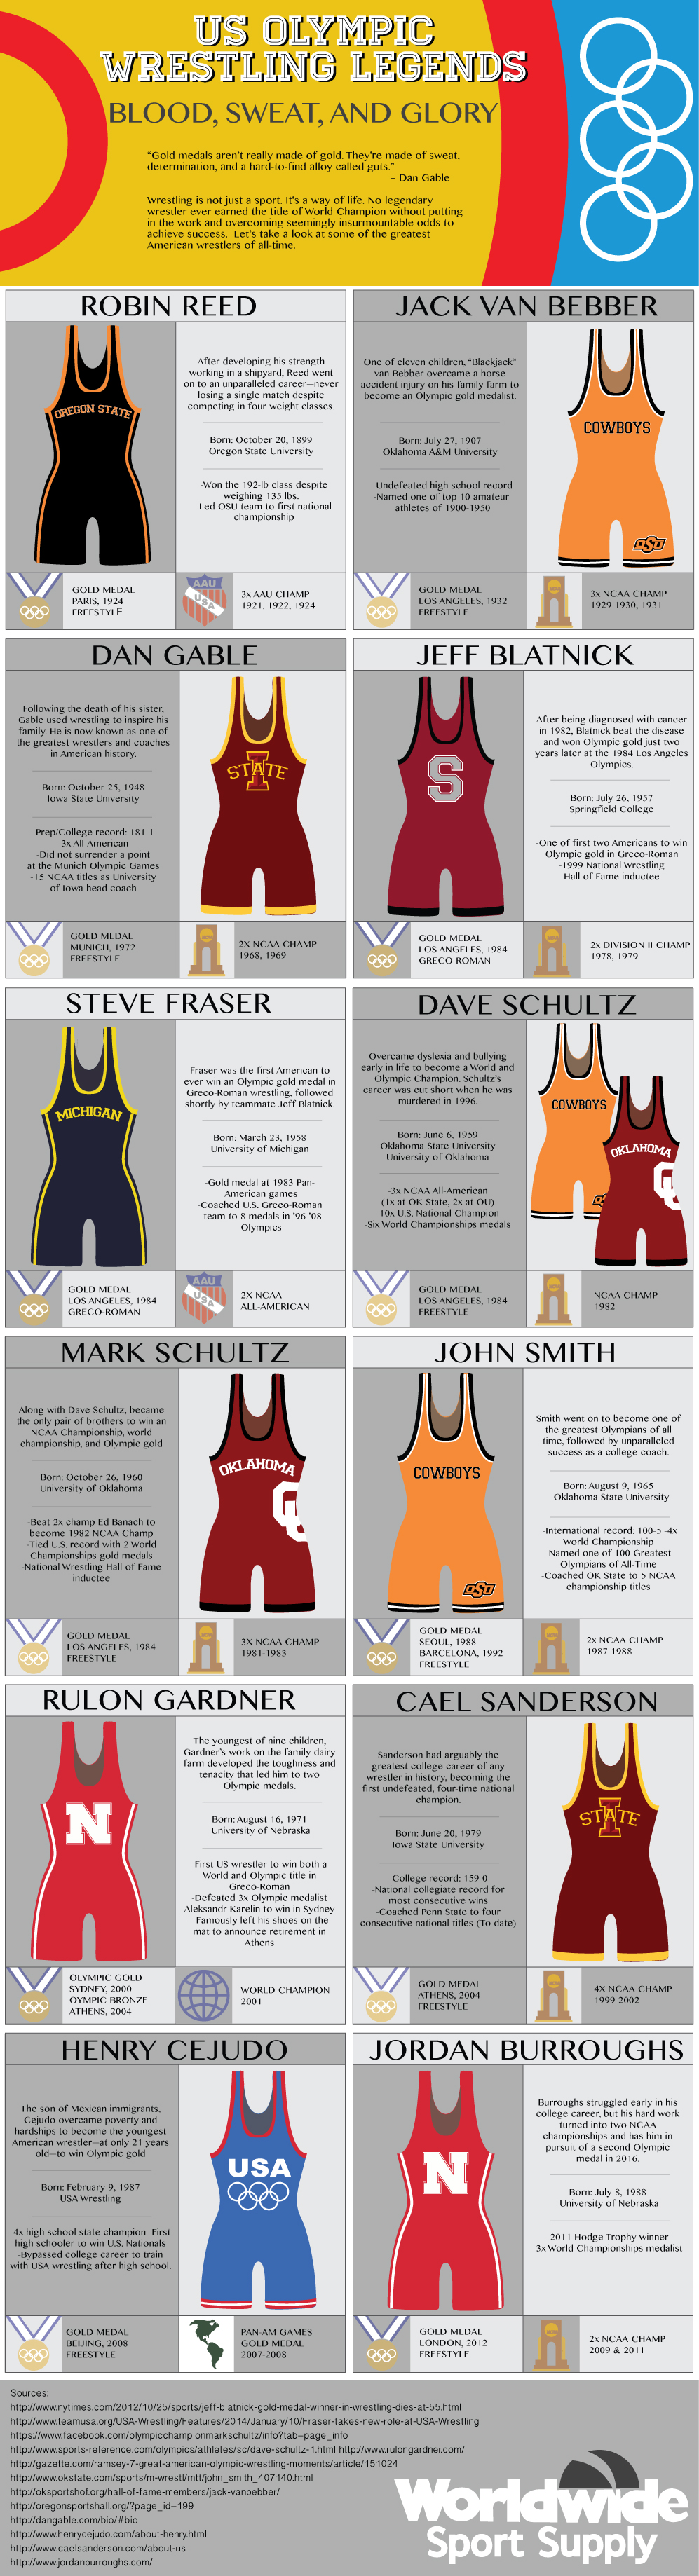 US-Olympic Wrestling-Legends